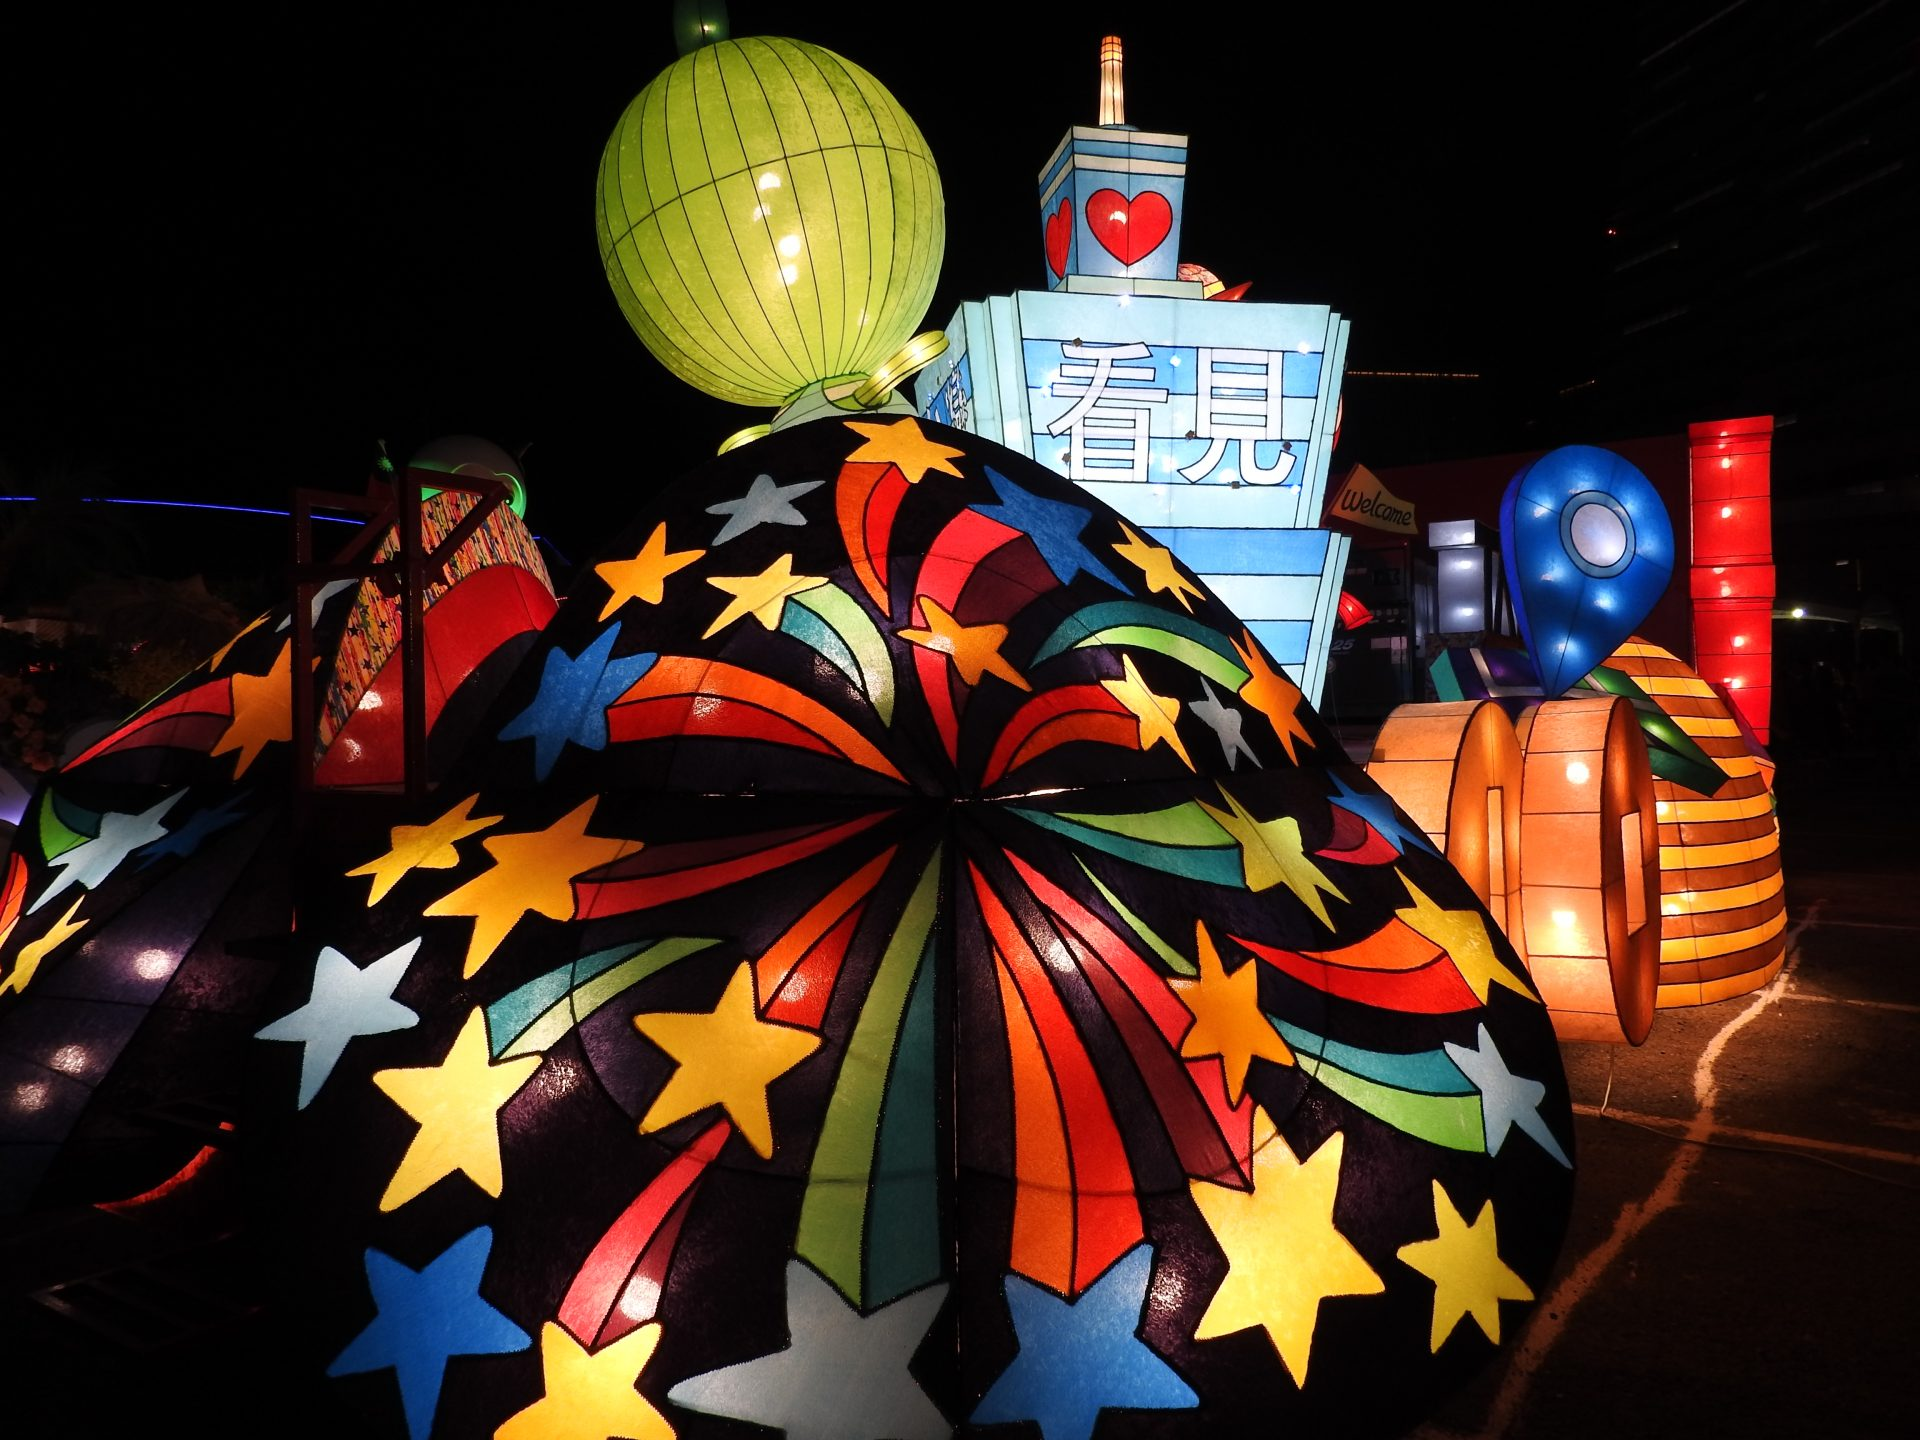 The float sponsored by the Taipei 101 Tower at the National Day parade. (Image: Billy Shyu/ Vision Times)